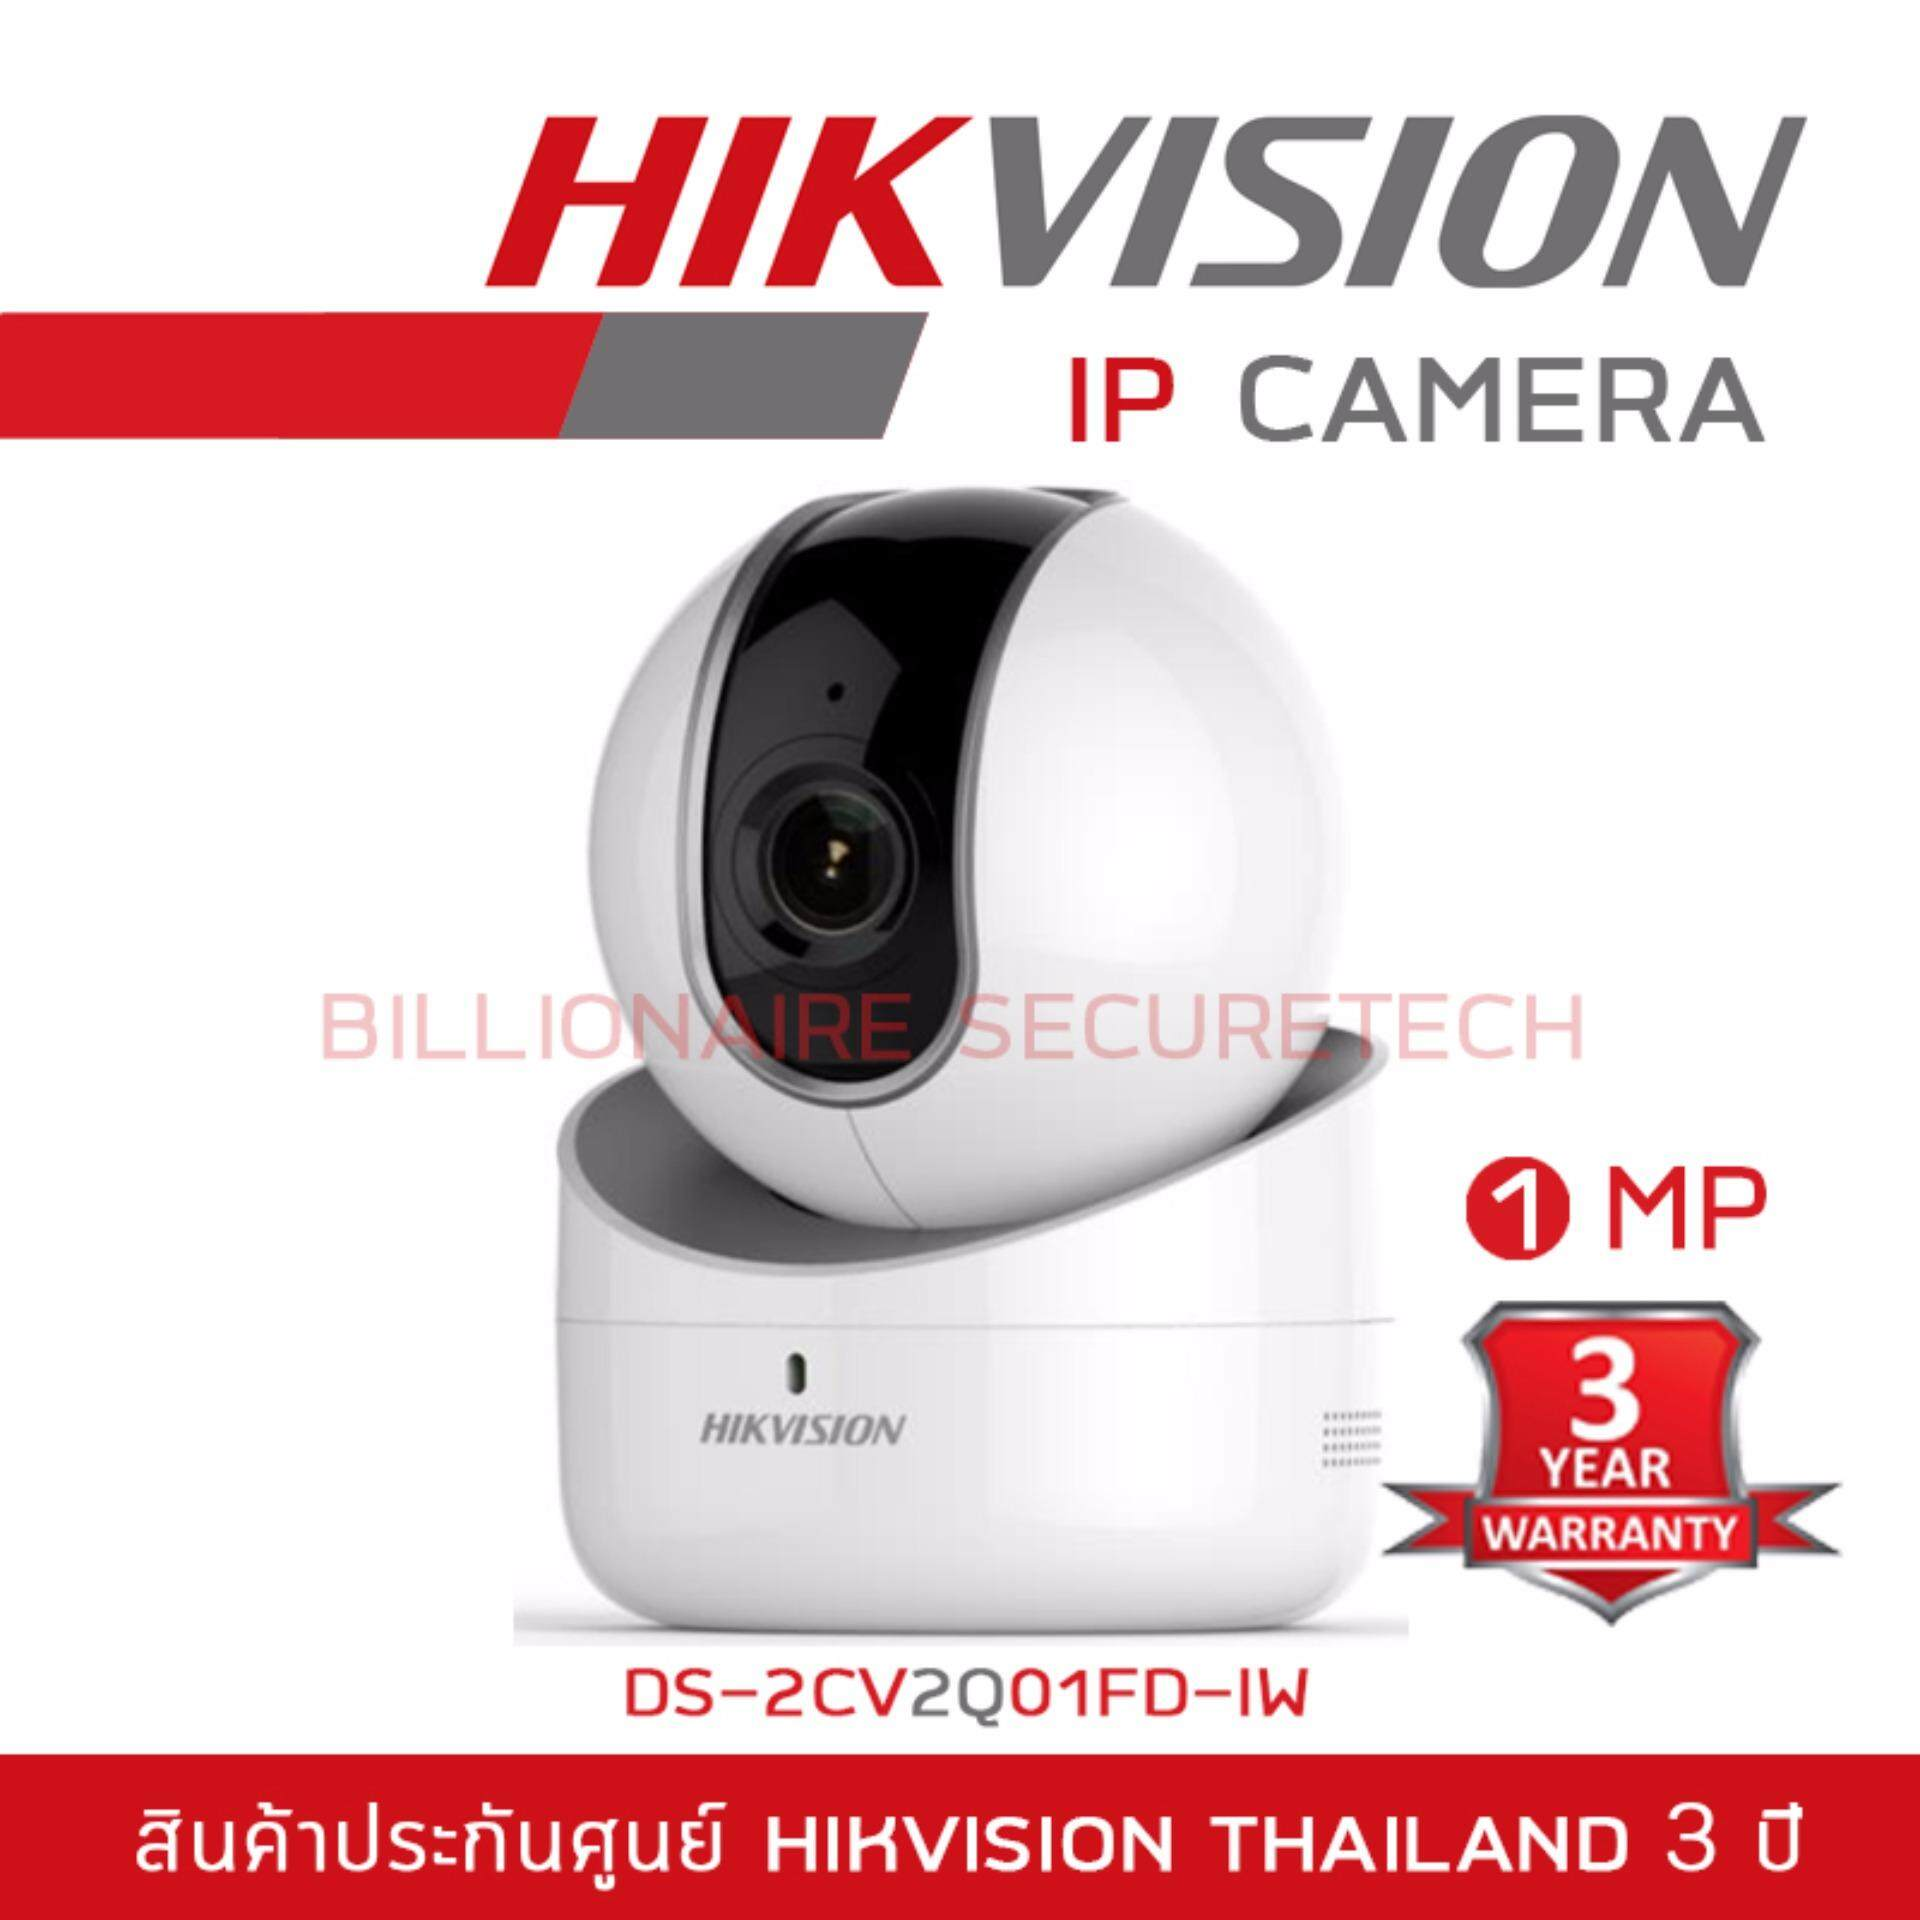 HIKVISION IP Camera DS-2CV2Q01FD-IW 1MP WIFI PT CAMERA Lens 2.8mm.